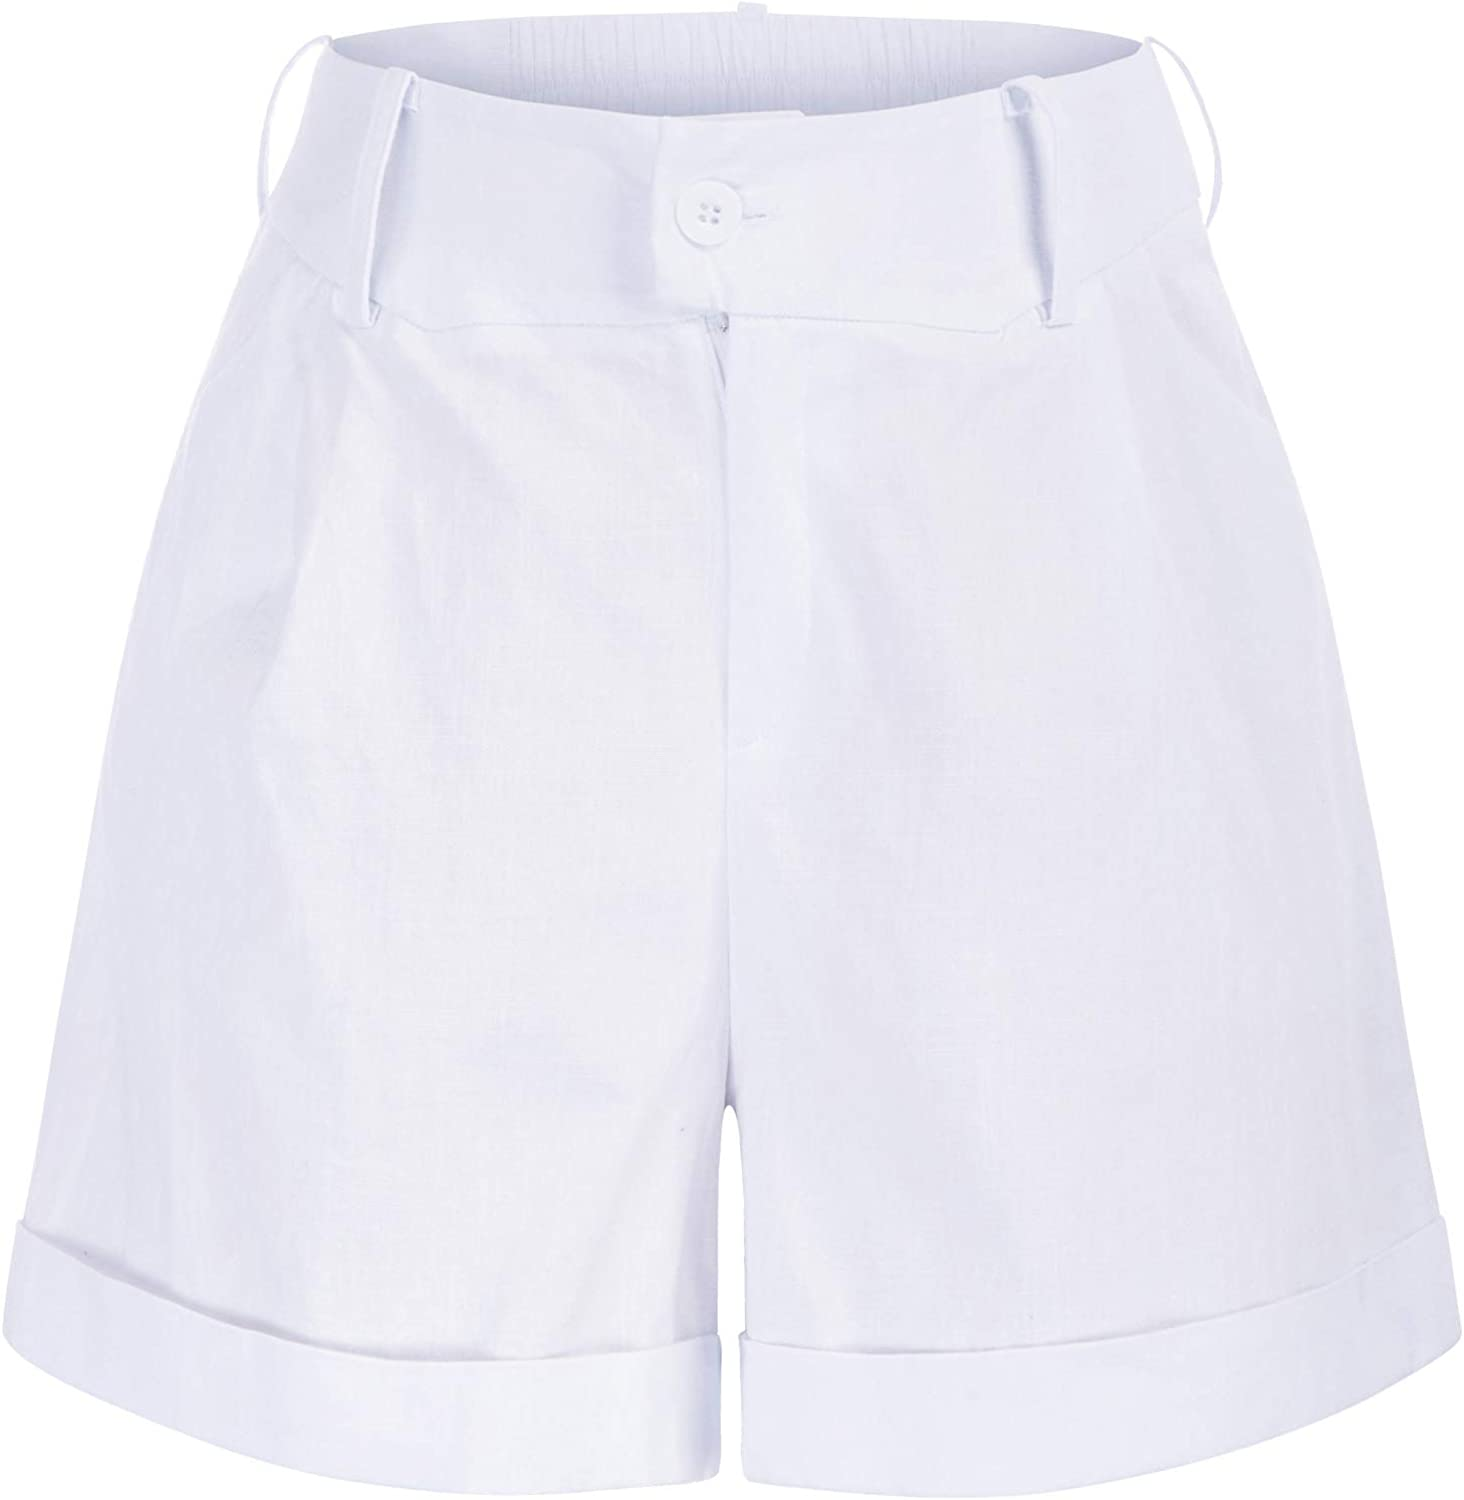 Vintage Shorts, Culottes,  Capris History Belle Poque Women Summer Linen Shorts Elastic High Waisted Shorts with Pockets $19.99 AT vintagedancer.com